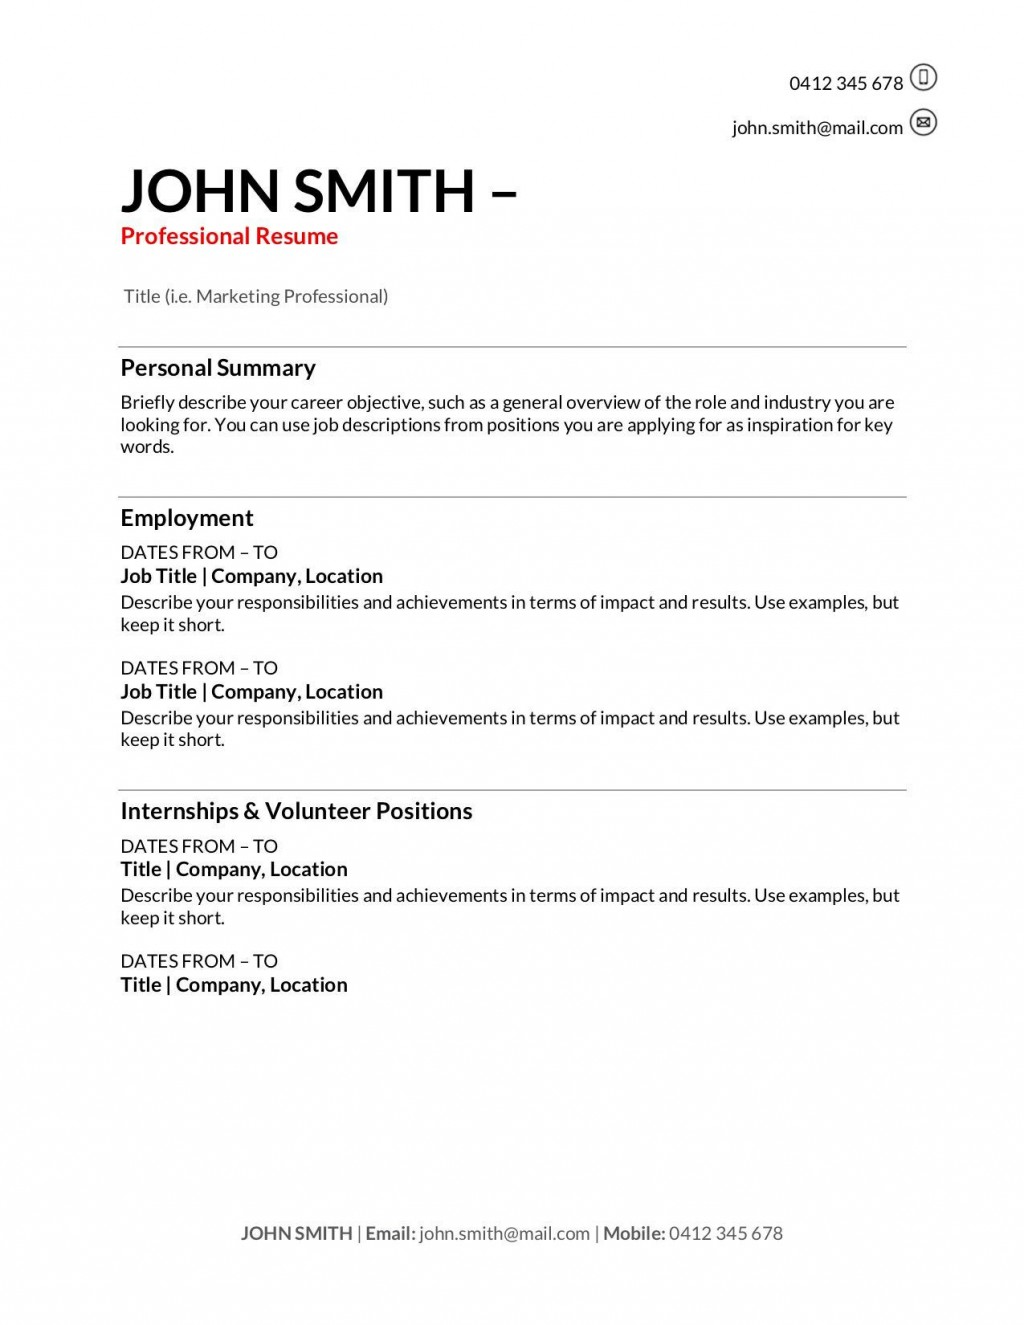 006 Impressive Resume Template For First Job High Def  Free TeenagerLarge